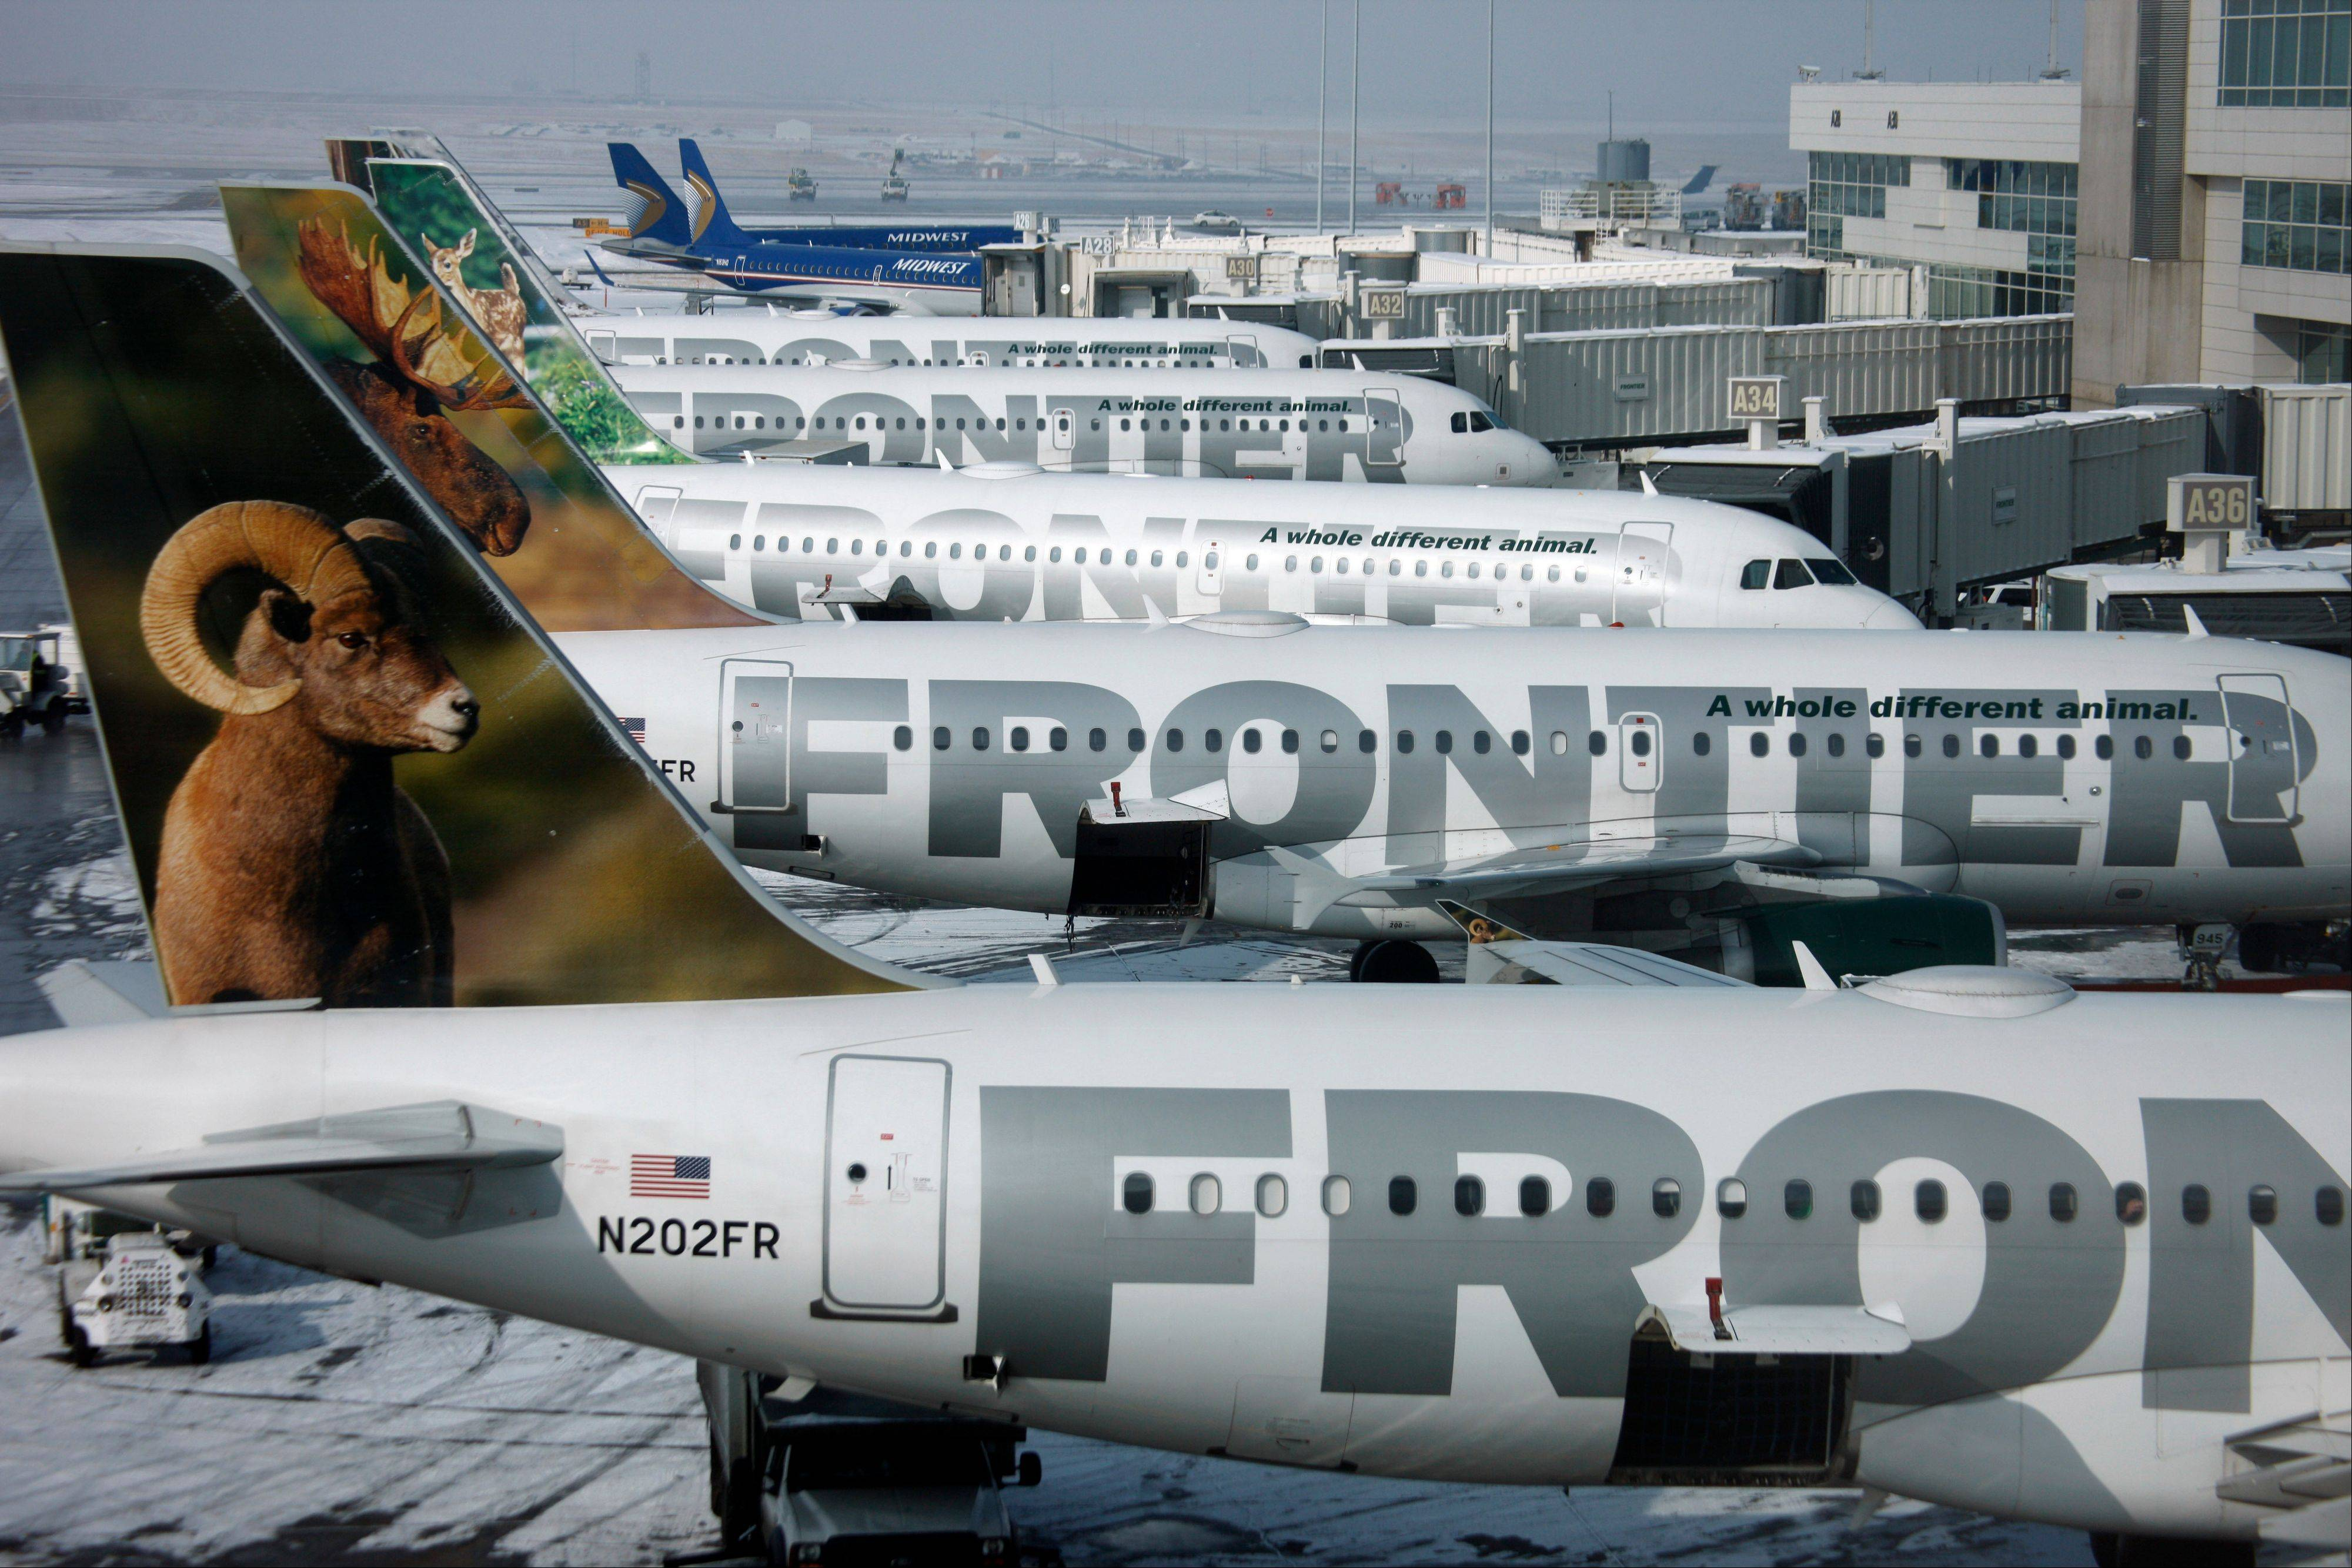 Colorado-based Frontier Airlines is planning to resurrect commercial airline service in Delaware. The company said Monday that it will begin its Airbus 320 service in Delaware on July 1, offering three flights a week to Chicago-Midway and Houston from the New Castle County Airport.